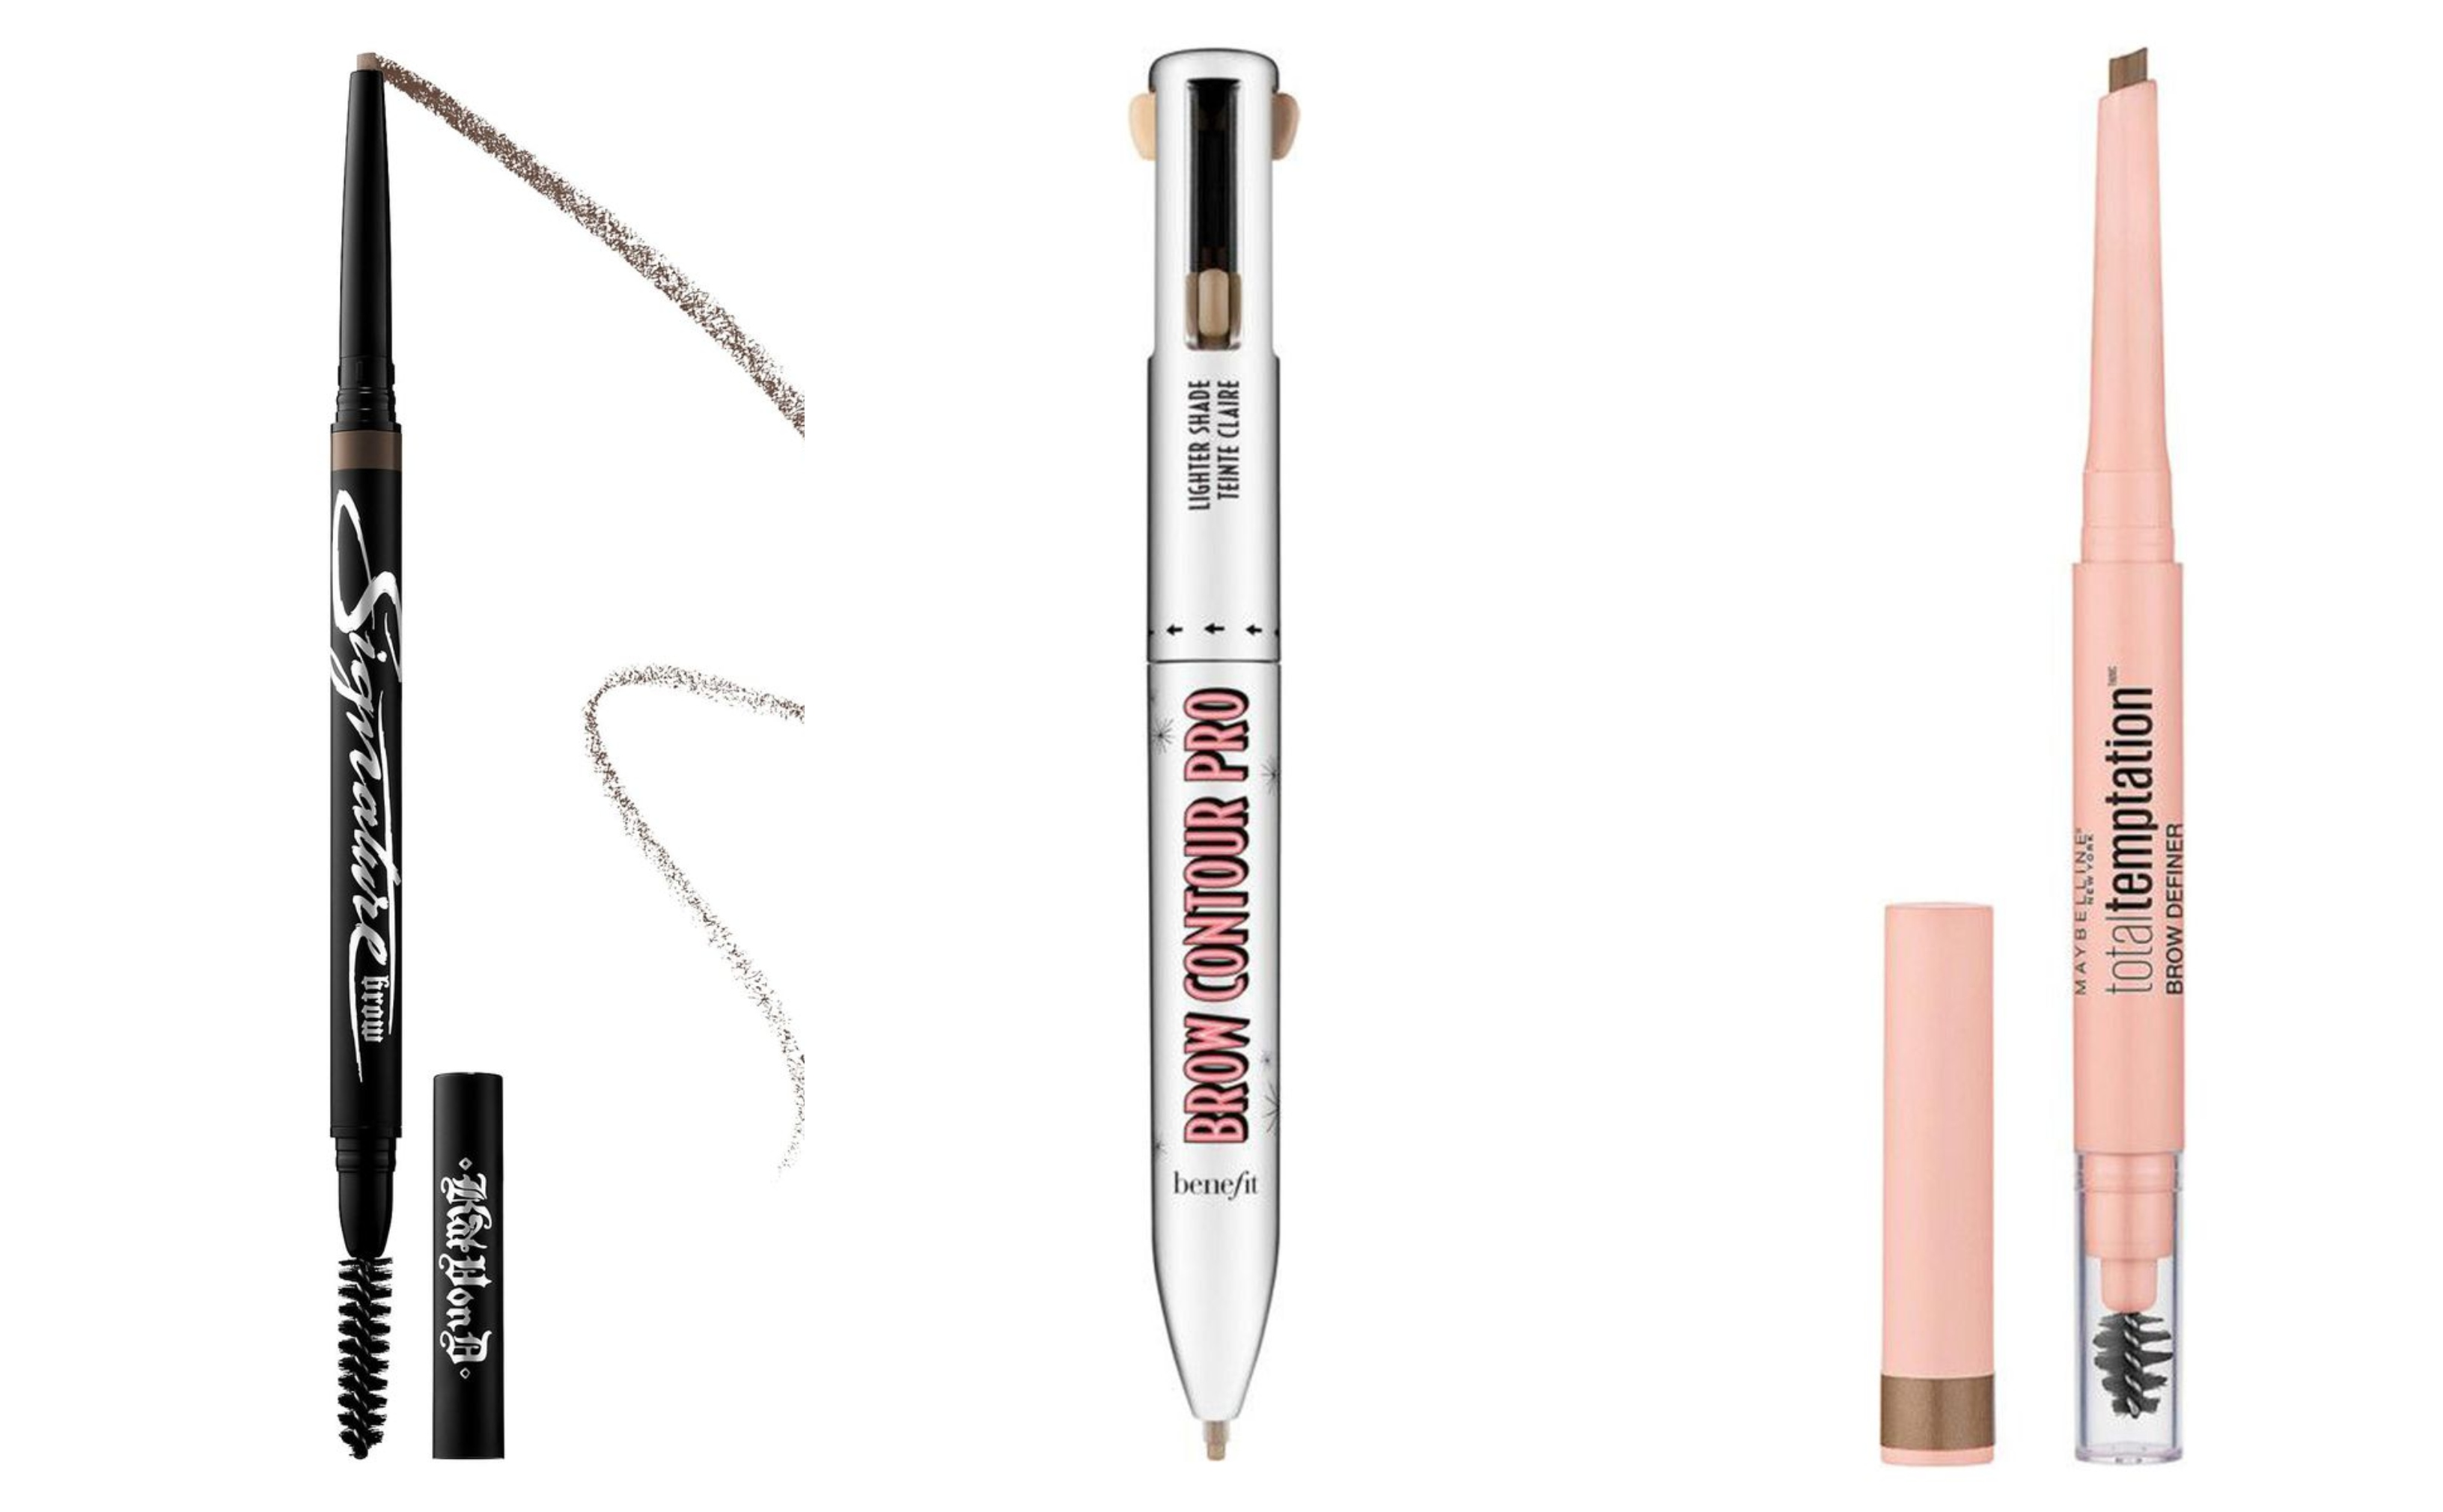 7 Eyebrow Pencils That Ll Make Shaping Your Arches Super Easy Beauty Cosmopolitan Middle East